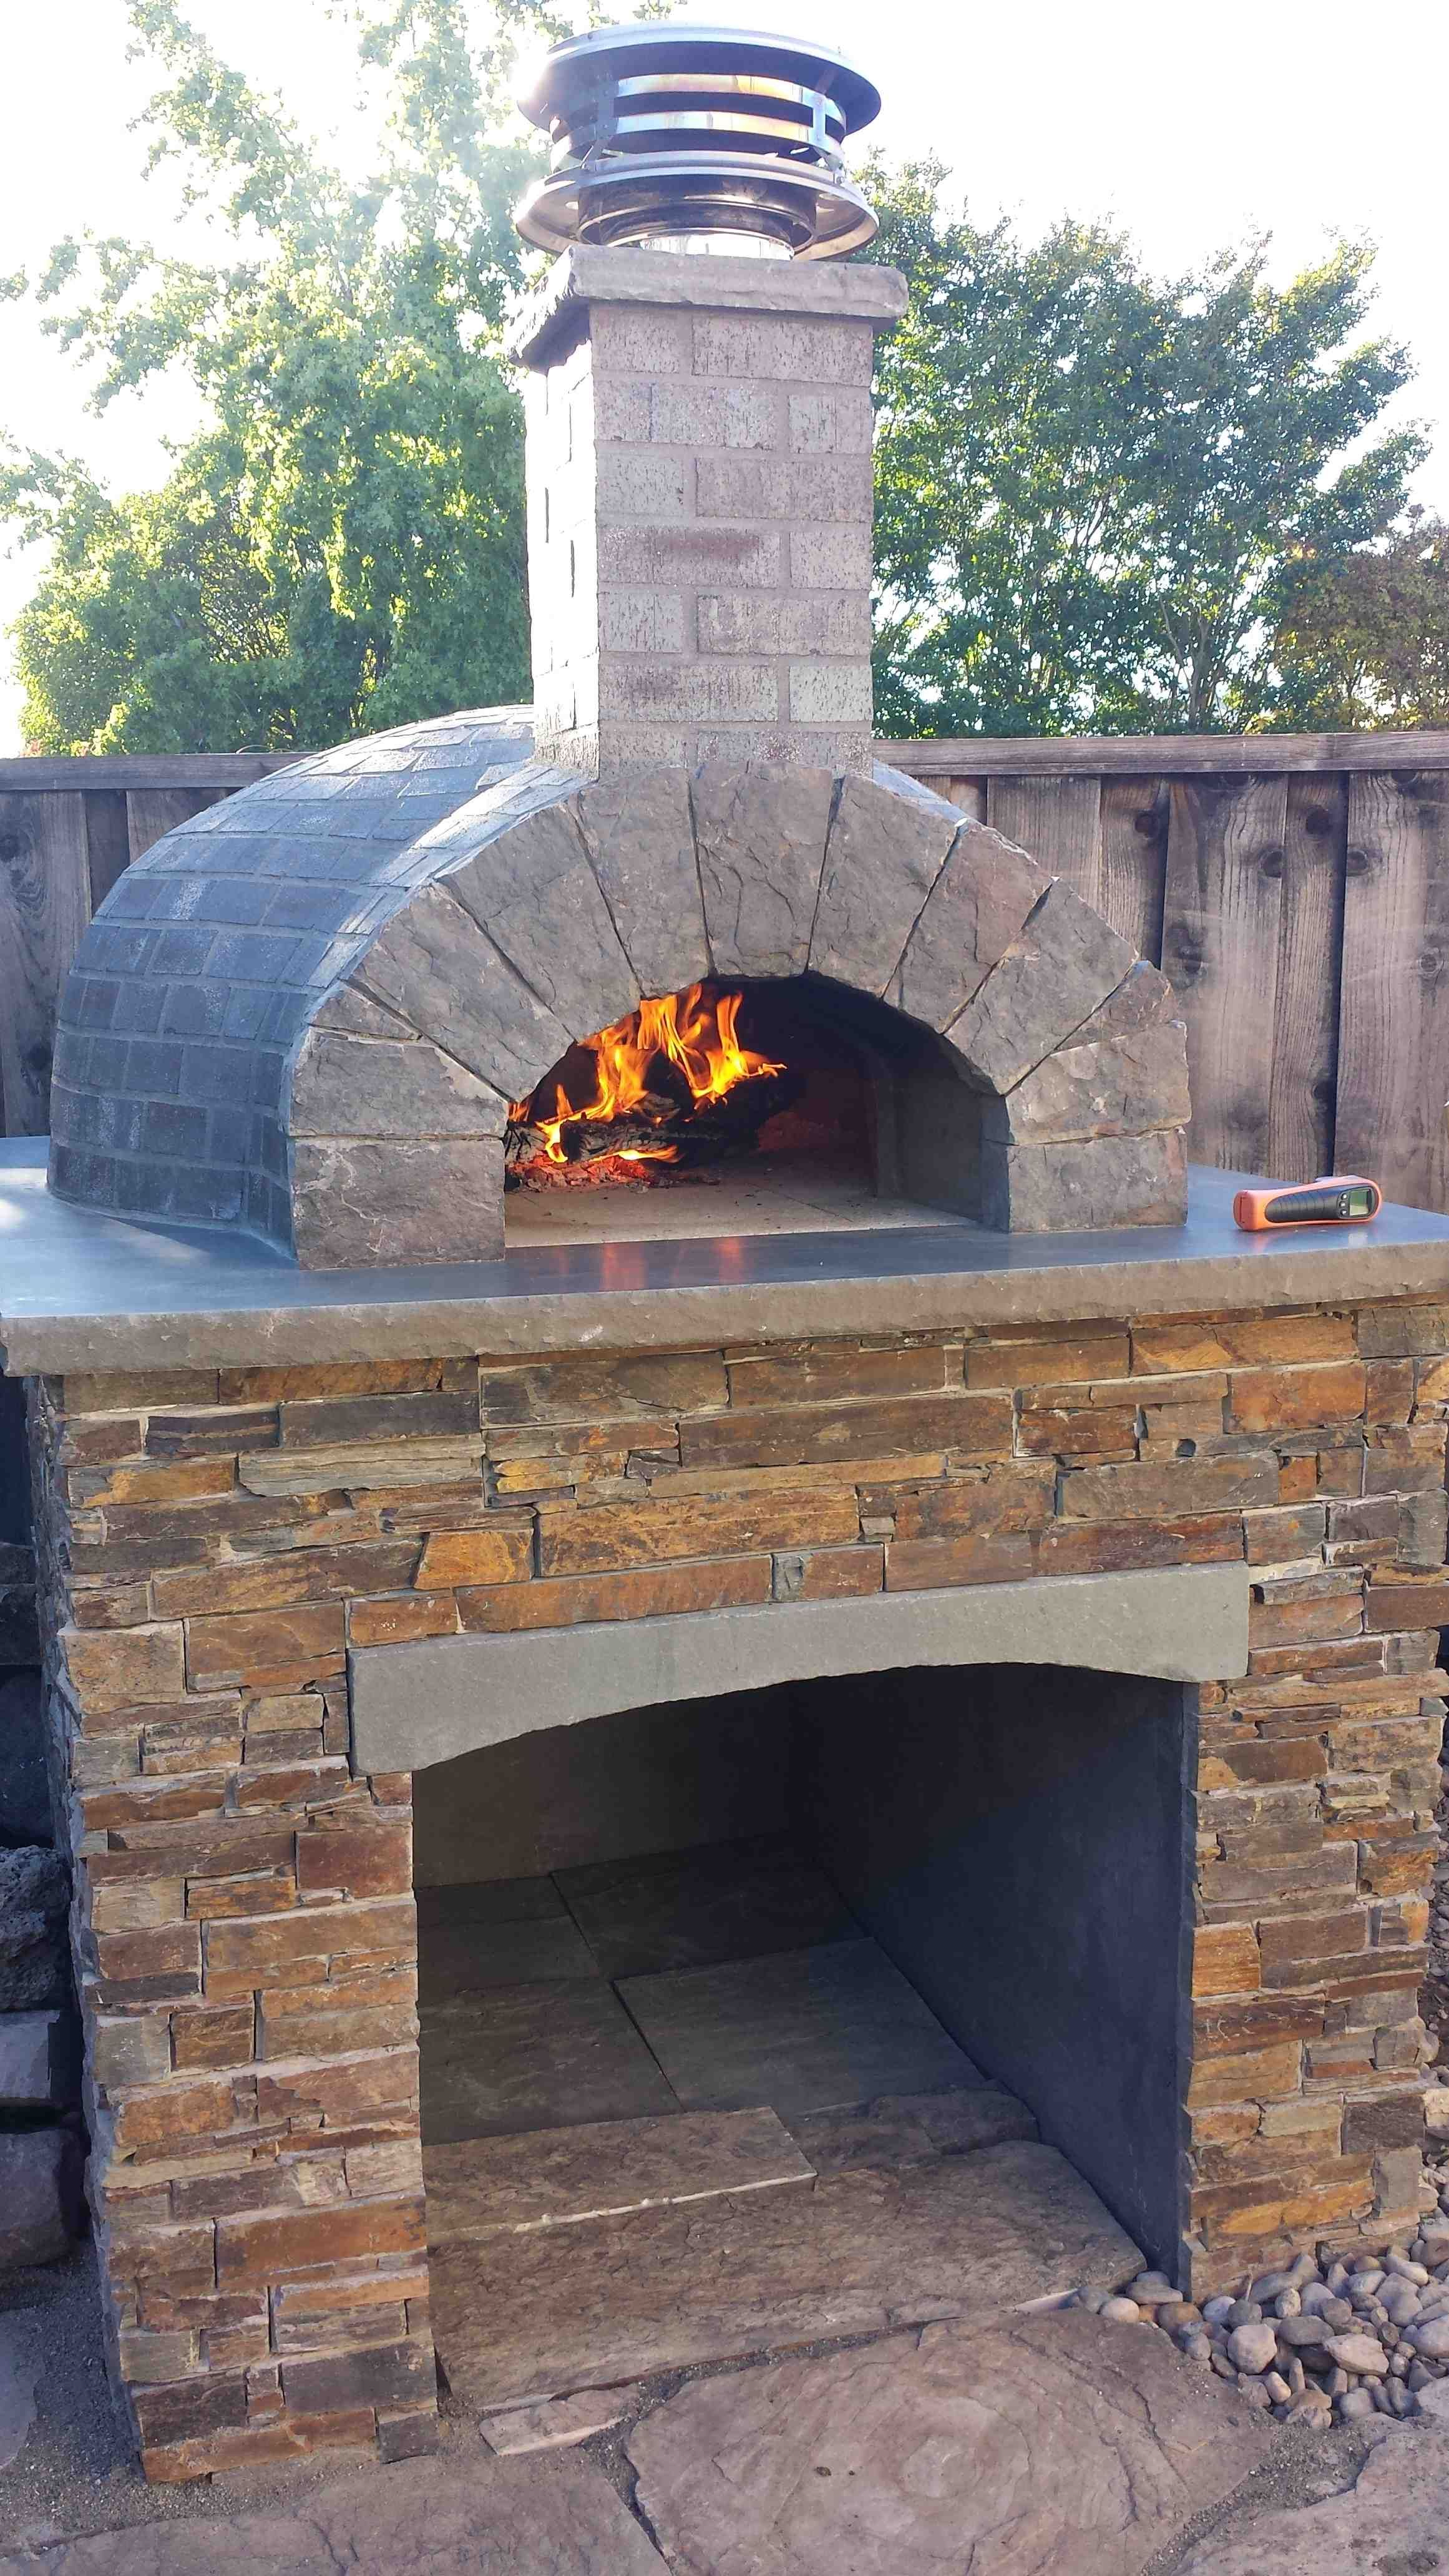 Caledonia Ontario Ca Forno Bravo Wood Fired Pizza Ovens In 2019